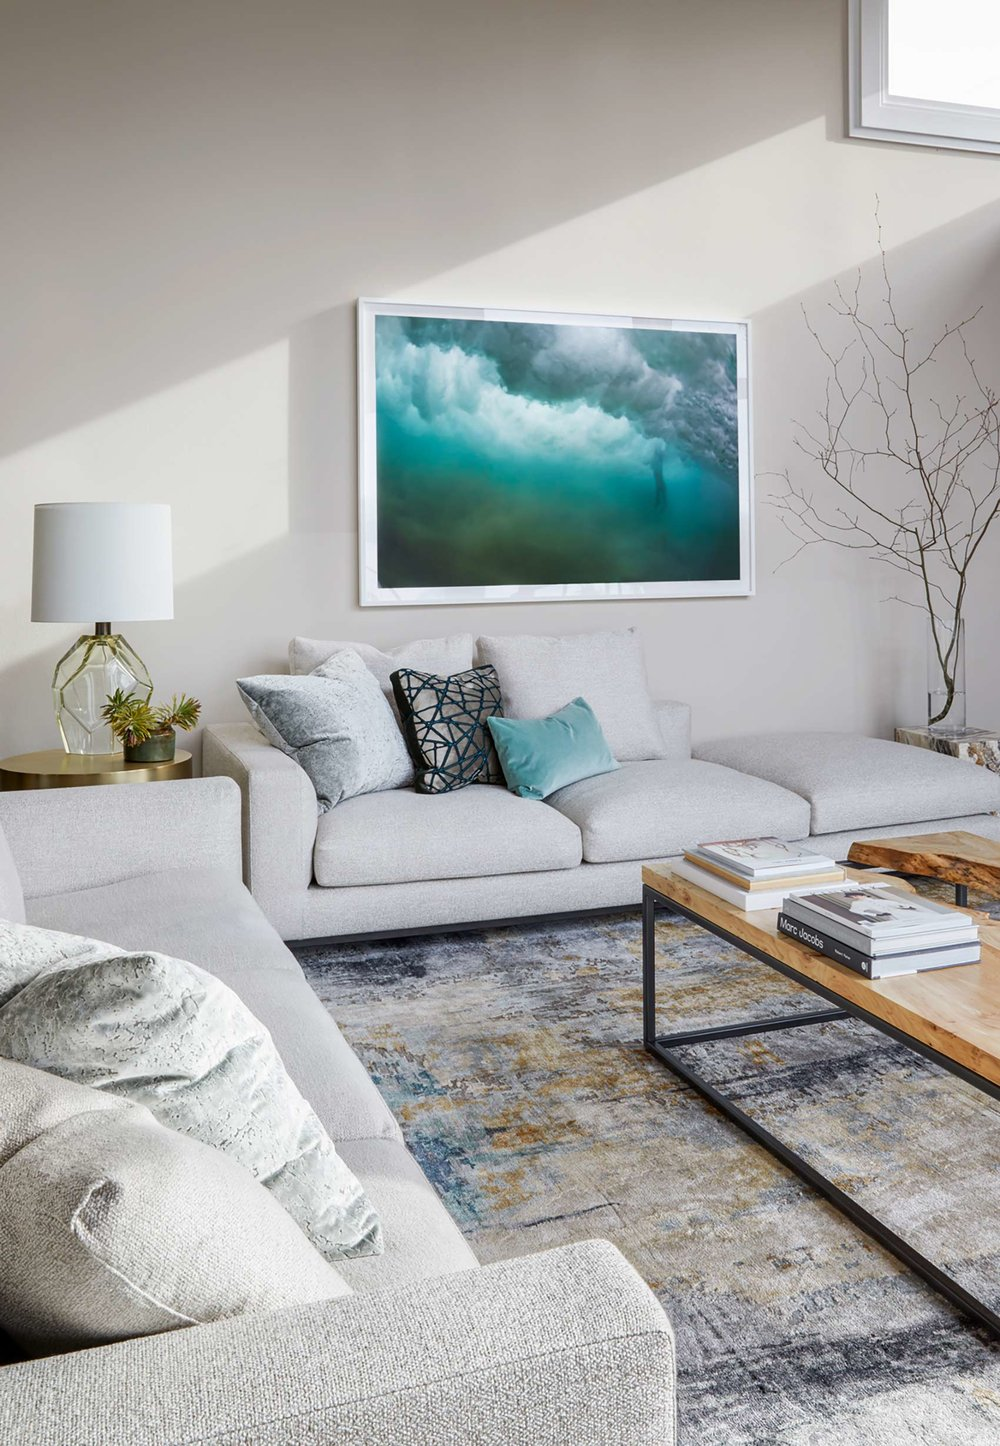 George_Barberis_Interiors_Photography_Seattle_Counterbalance_8.jpg